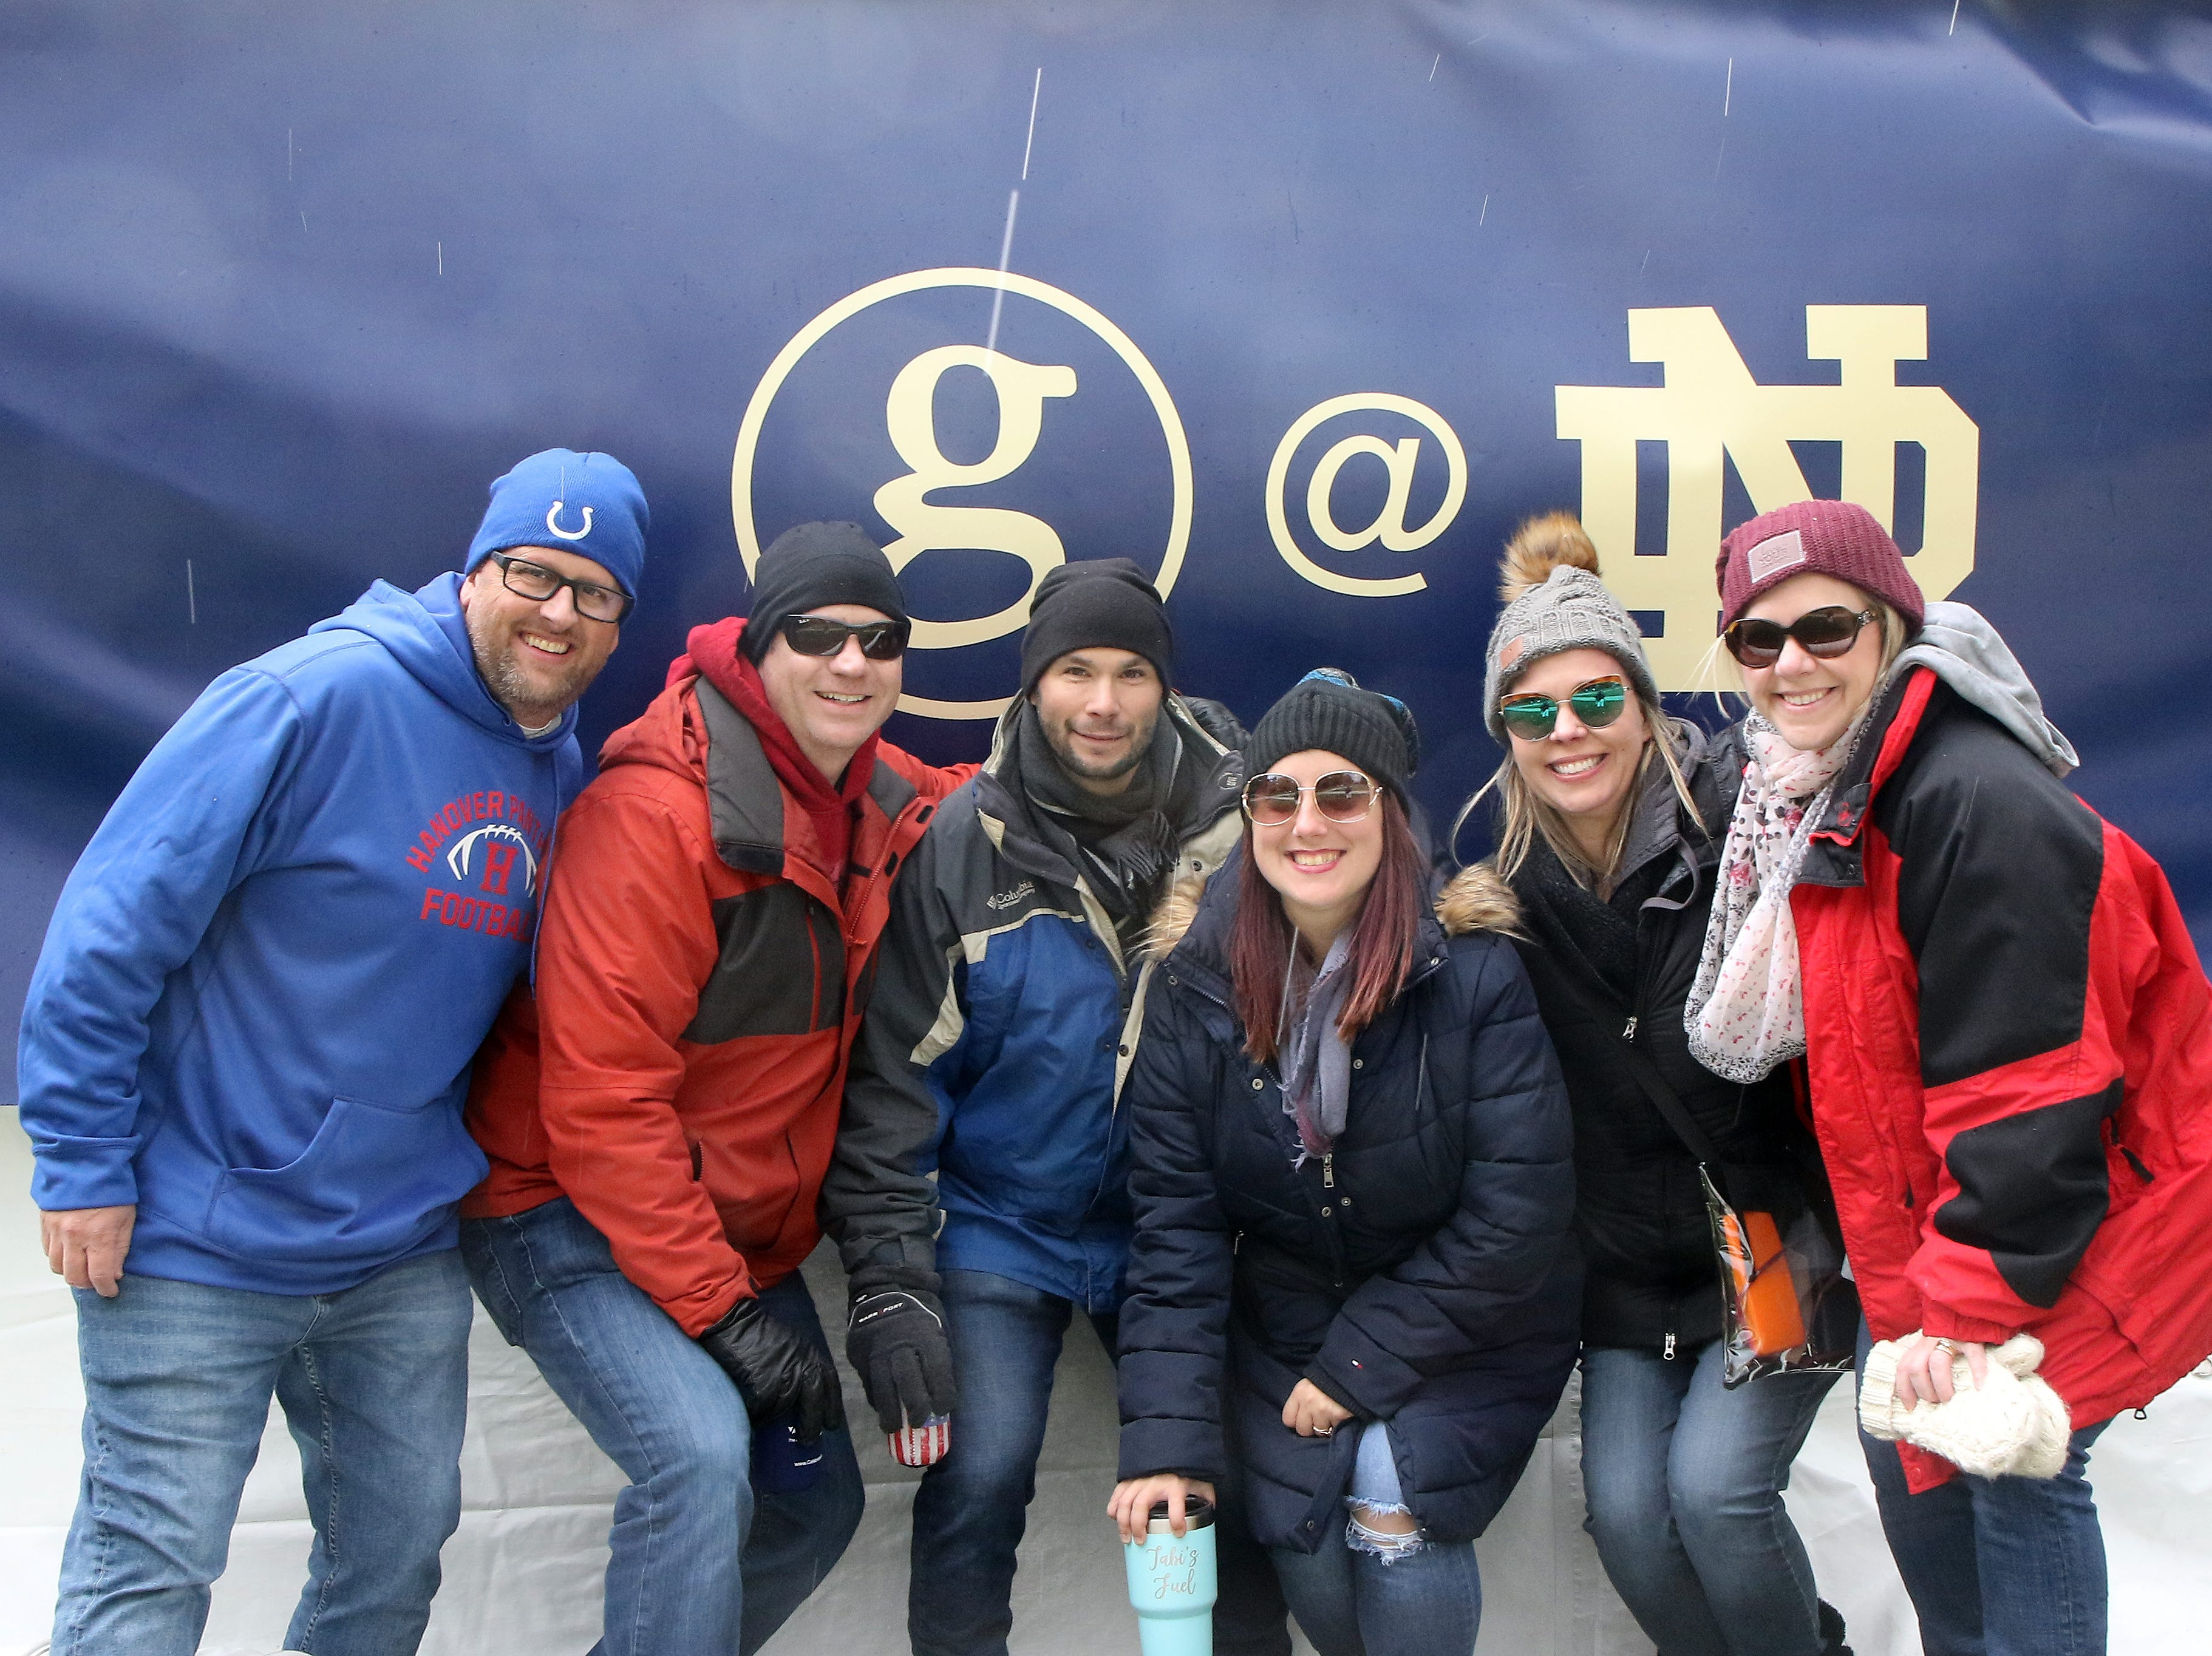 Fans of Garth Brooks pour in toward Notre Dame stadium for historic first-ever concert at Notre Dame Stadium in South Bend, Ind., on Saturday, Oct. 20, 2018.